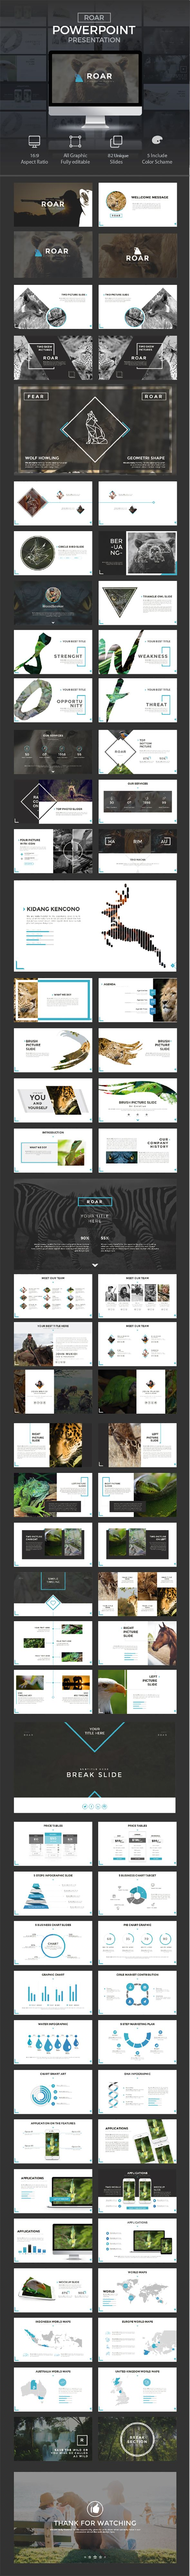 ROAR Presentation Template — Powerpoint PPTX #1920x1080 #entrepreneur • Download ➝ https://graphicriver.net/item/roar-presentation-template/18801498?ref=pxcr